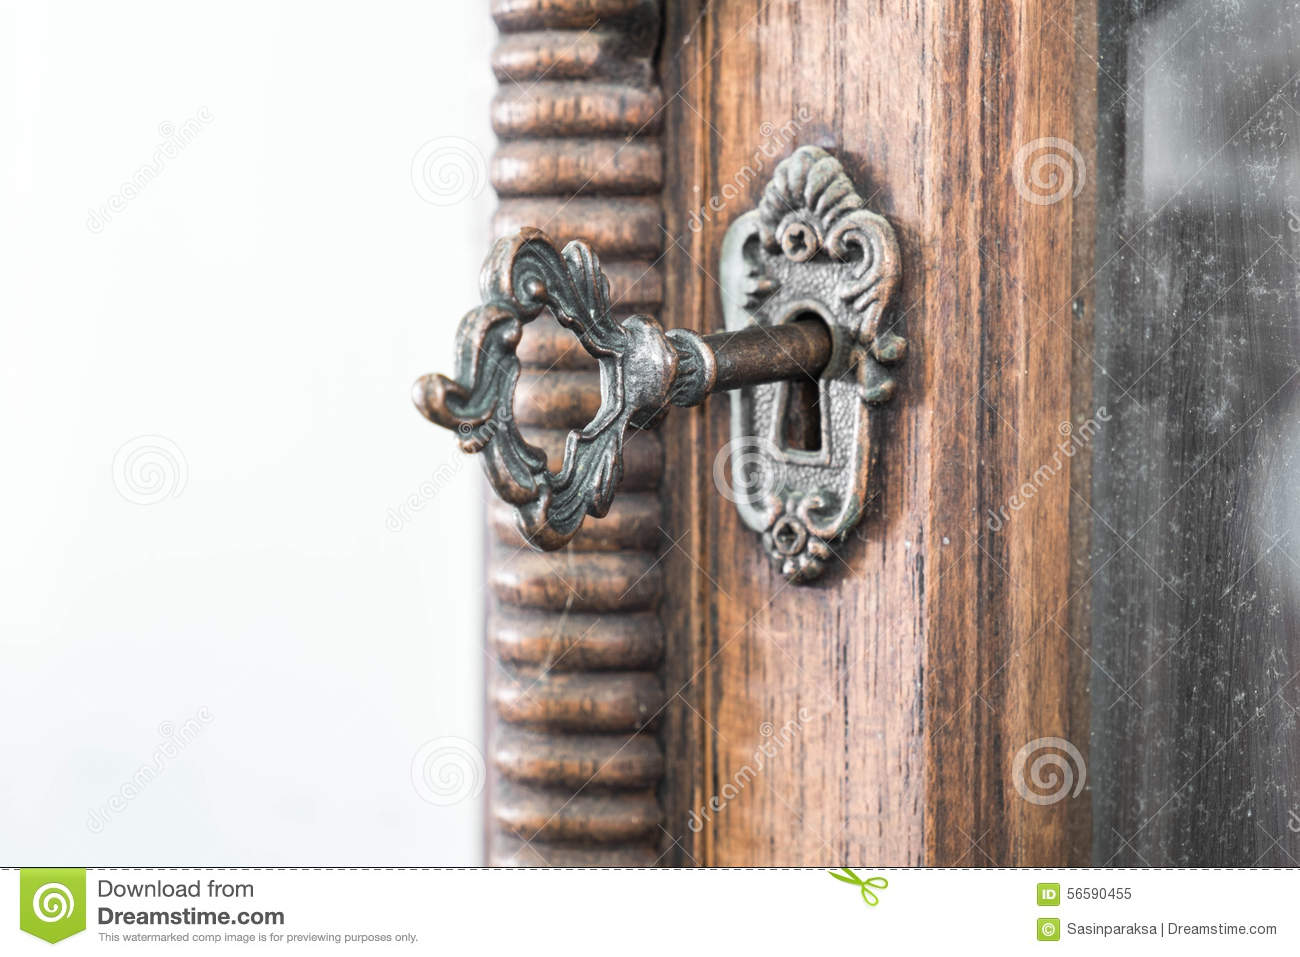 Vintage keyhole with key on wooden cabinet